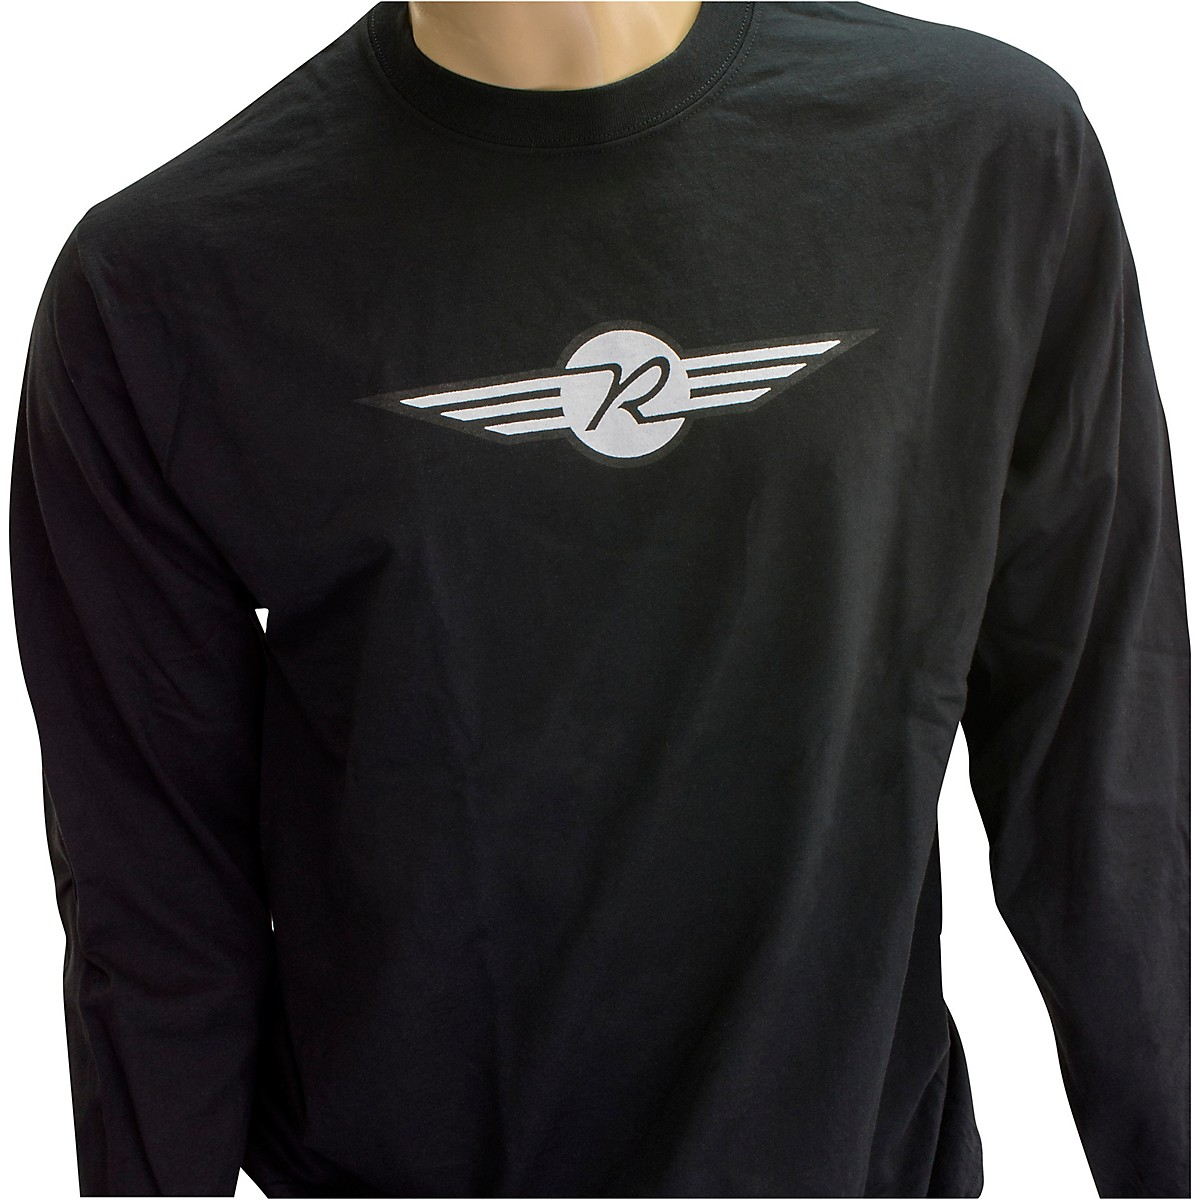 Reverend Long Sleeve T-Shirt